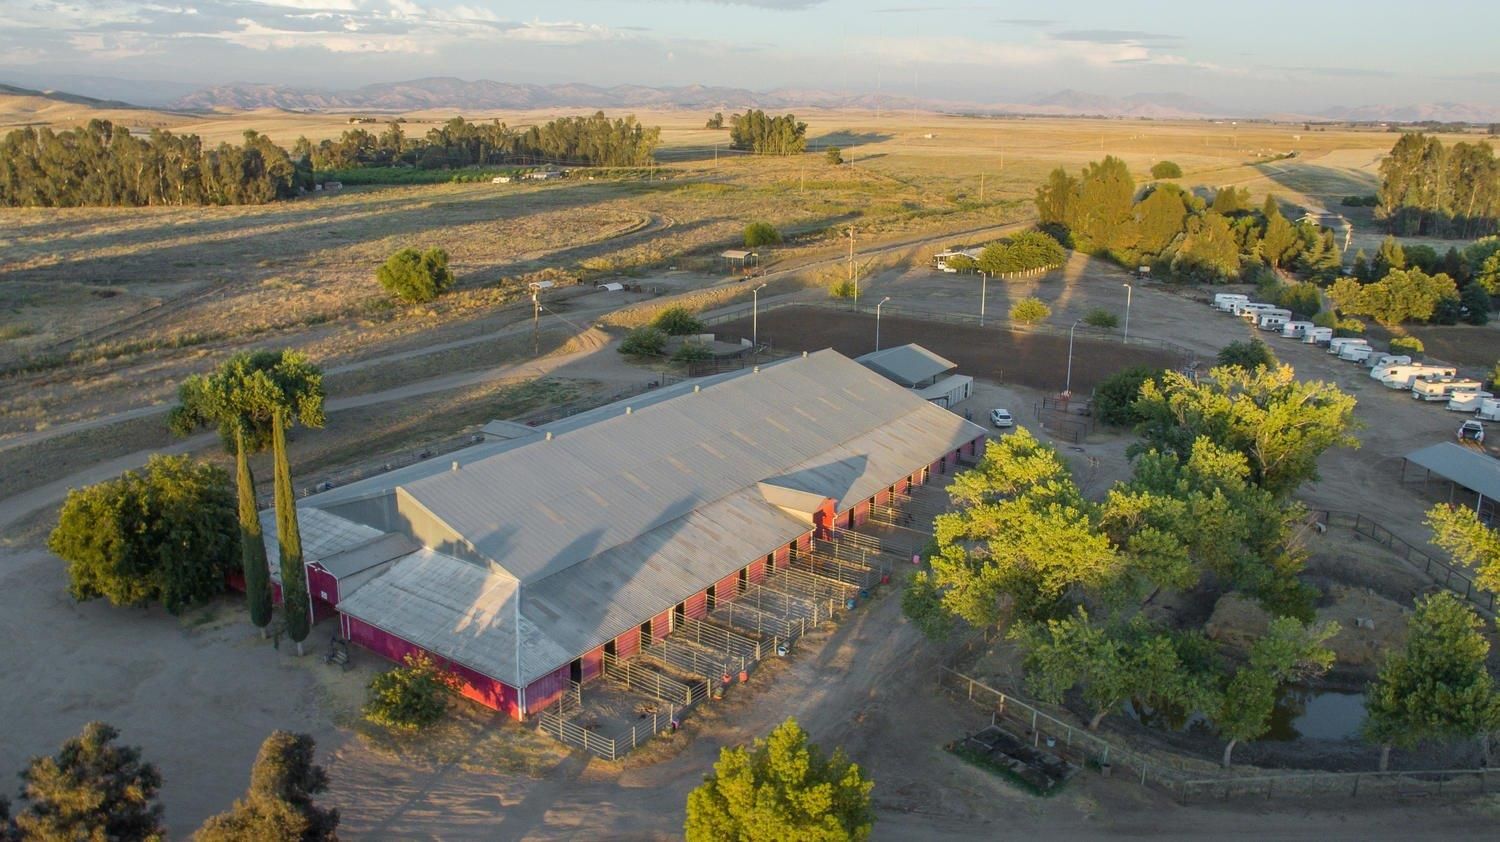 Exclusive Opportunity Fresno/Clovis fully licensed and permitted Equestrian Event and Boarding Facility. Licensed for 100 horses and permitted for events. This 12.5 acre property supports (1) The main barn 132'x228', total of 28 stalls/paddock 12' x 12' with 12' x 24' paddocks and 6 stalls 12' x 12' with 24' x 24' paddocks, concrete walls, self watering, feed manger, and rubber mats floors. 32 individual lockable tack rooms and grooming areas. The under roof arena is fully lighted and over head sprinklers, arena measures 79'x204'. (2) 2 long barns 29'x190'. (3) Feed barn 40'x40' (4) Fenced Round Pen 50', (5) Fenced dry pastures with shaded areas, cross ties/ wash rack. (6) Outdoor arena 120'x240' with stadium lighting. (7) Parking for horse trailers and outdoor lockers for tack. (9) 1942 + sq-ft 3/2 home sits on the front of the property.